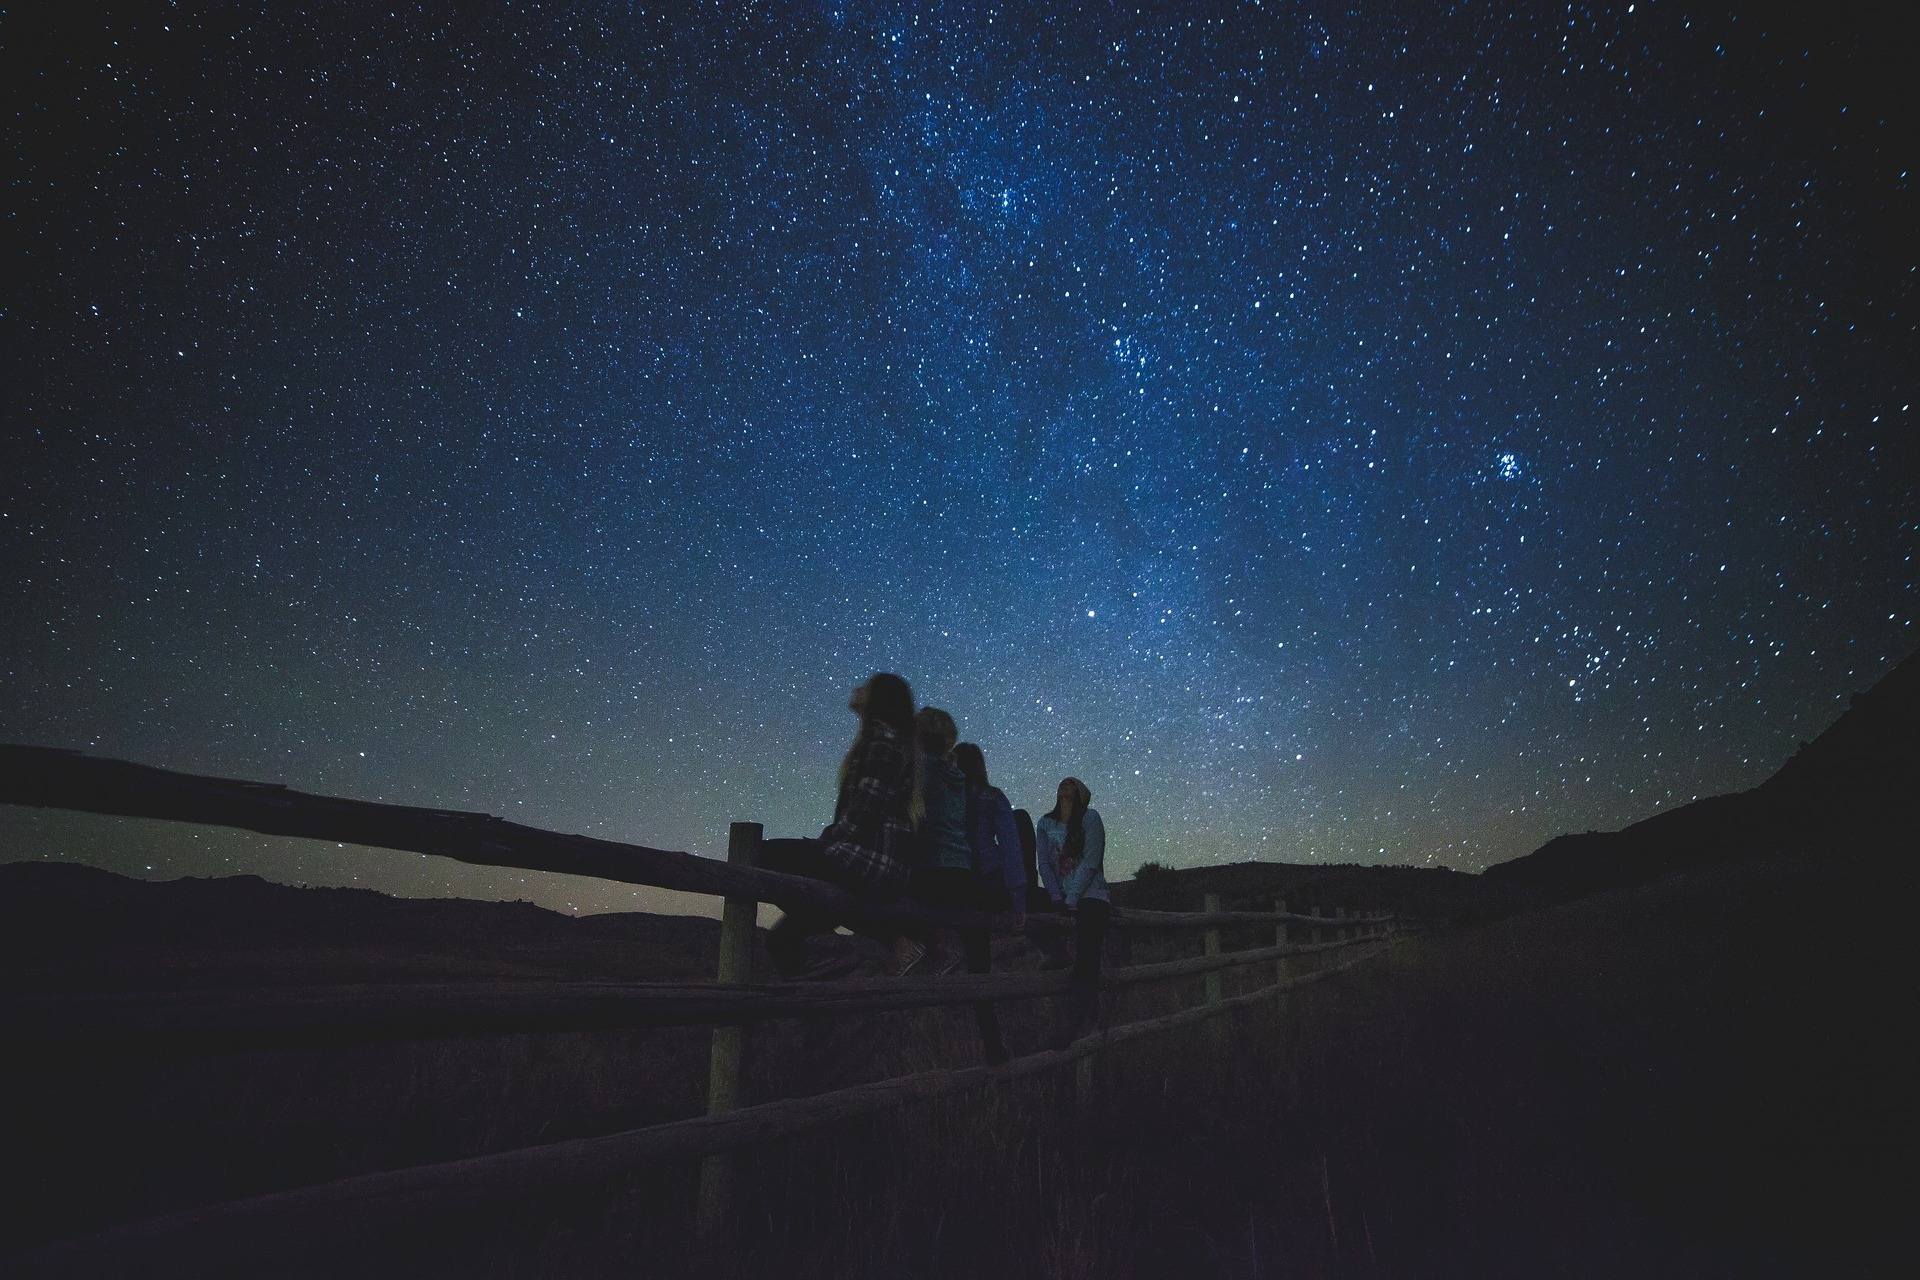 People sitting on a fence watching stars